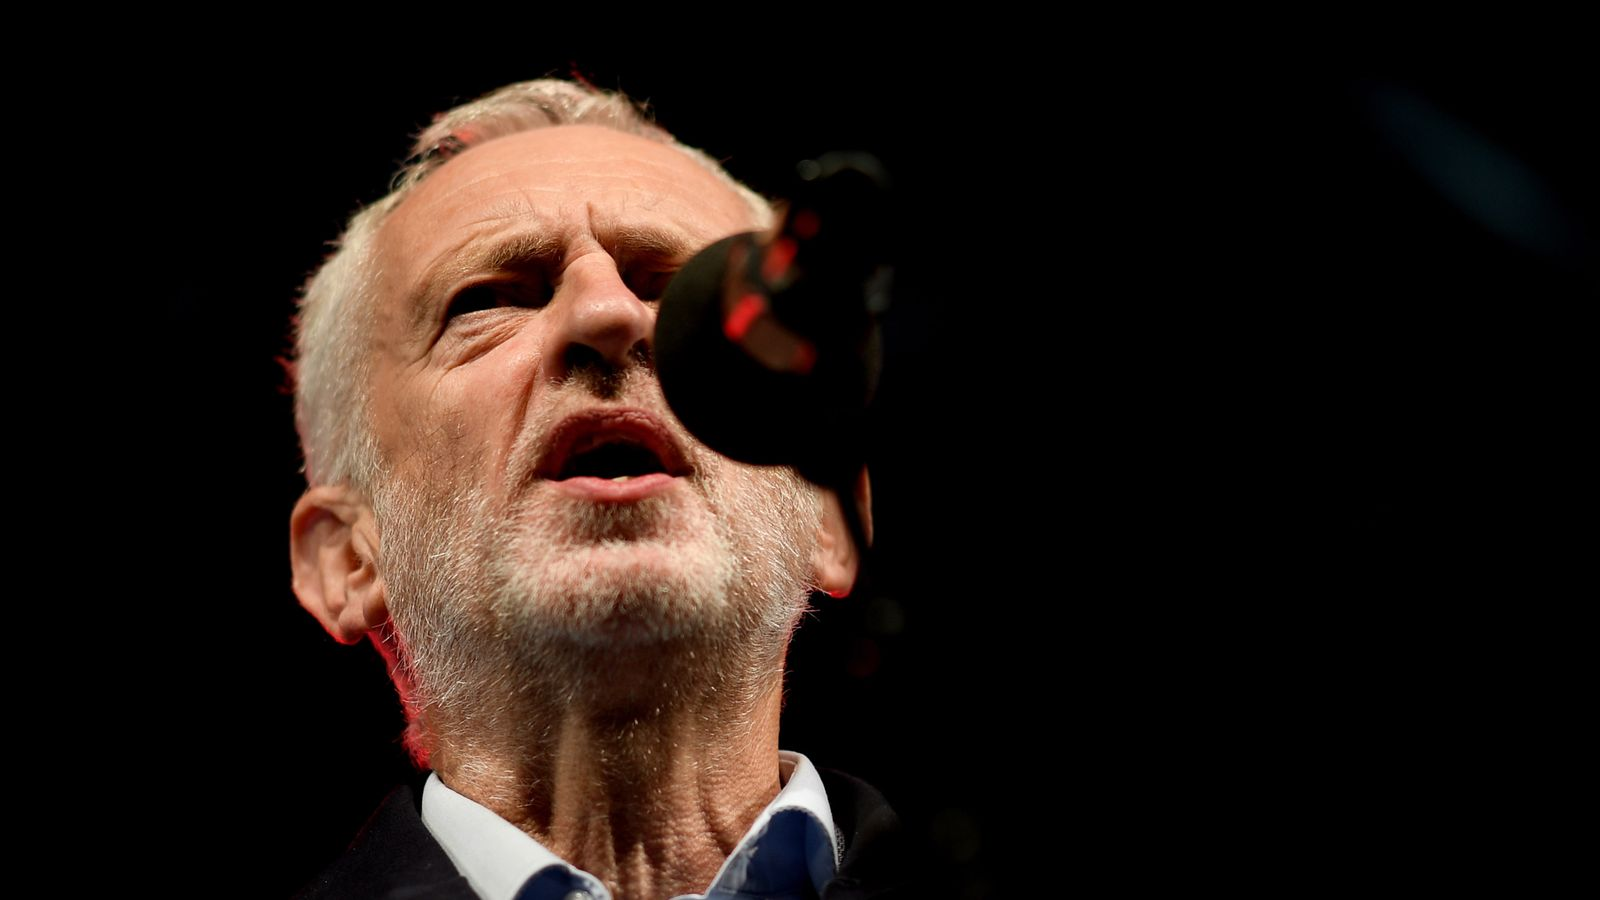 Labour to make it easier to oust sitting MPs